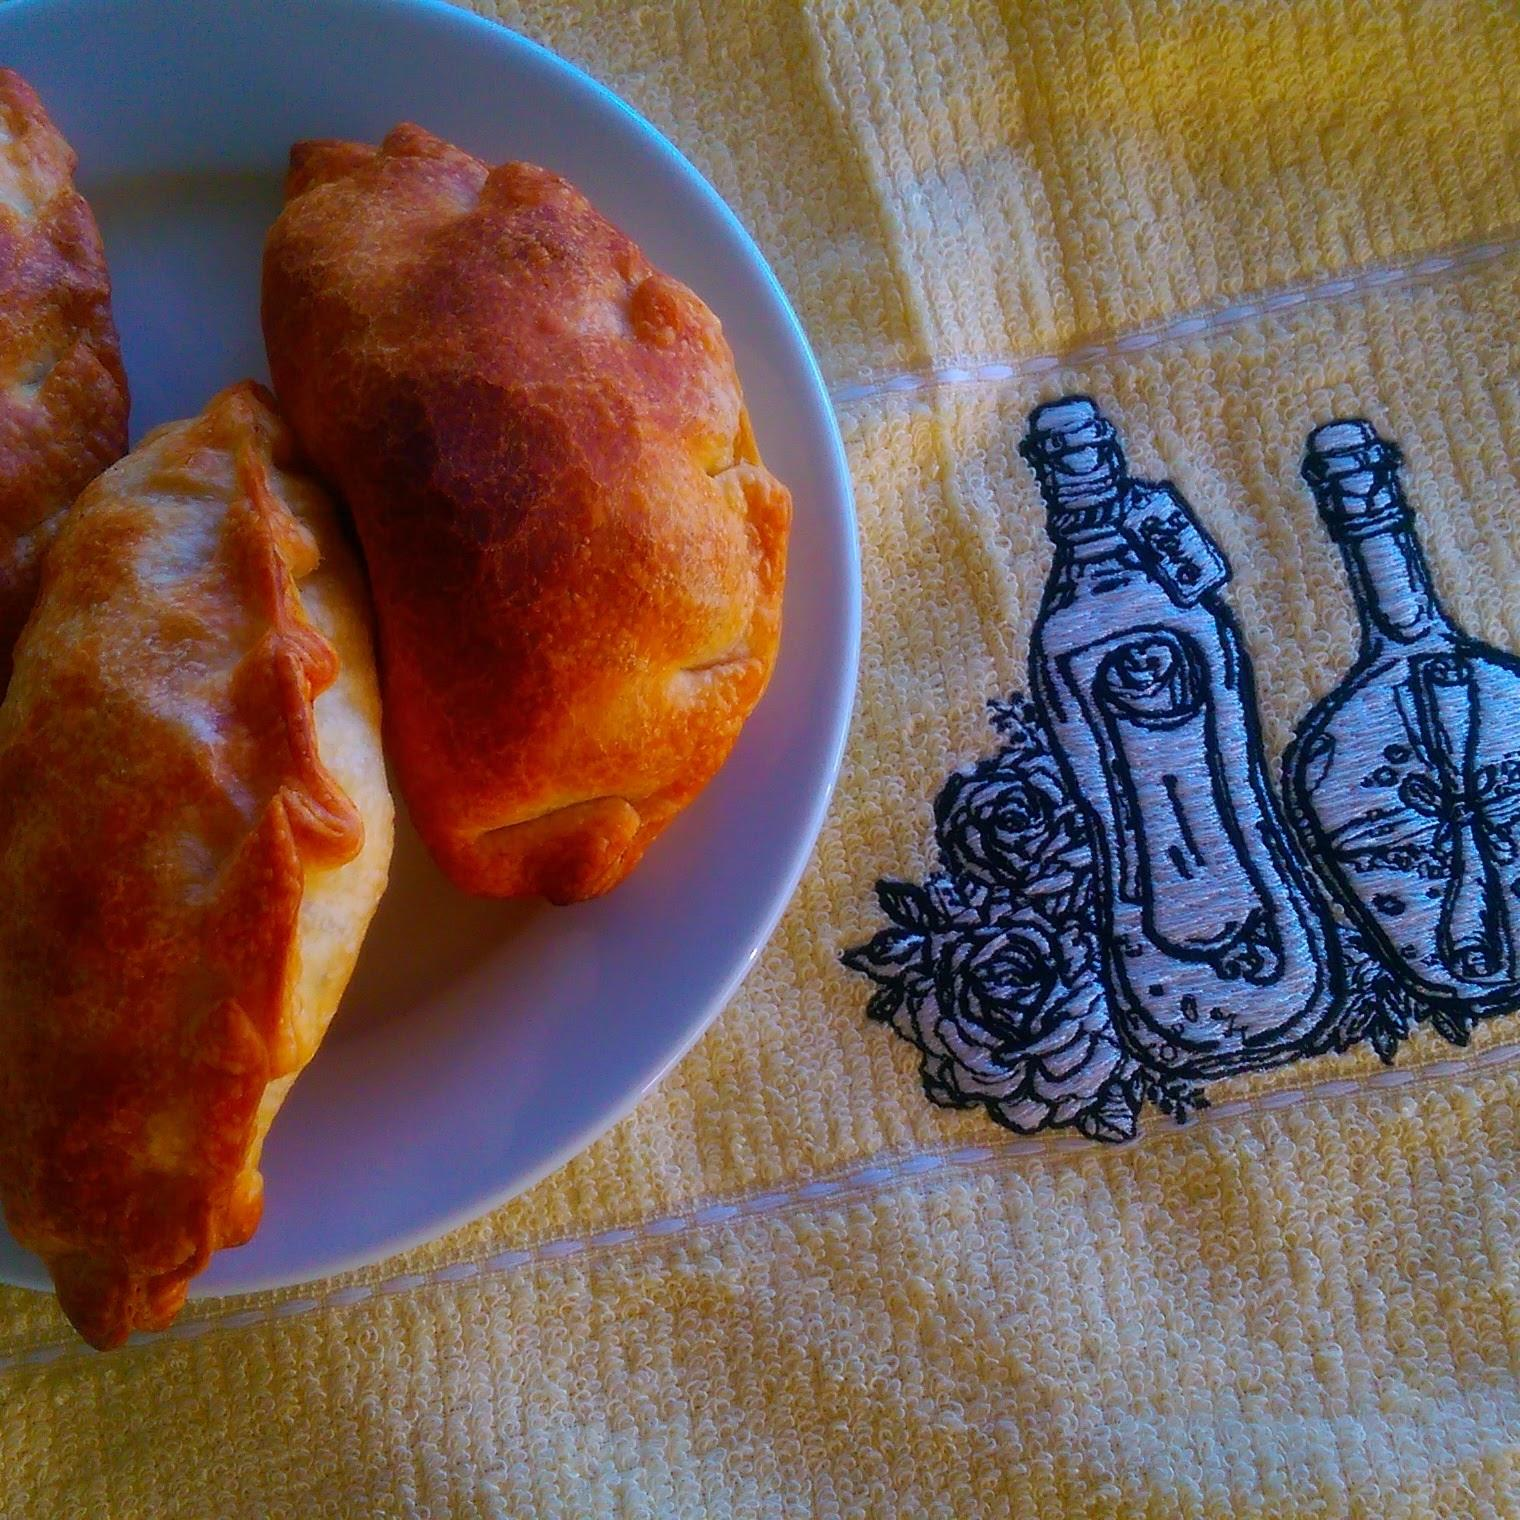 Embroidered napkin with couple of bottles and flowers design